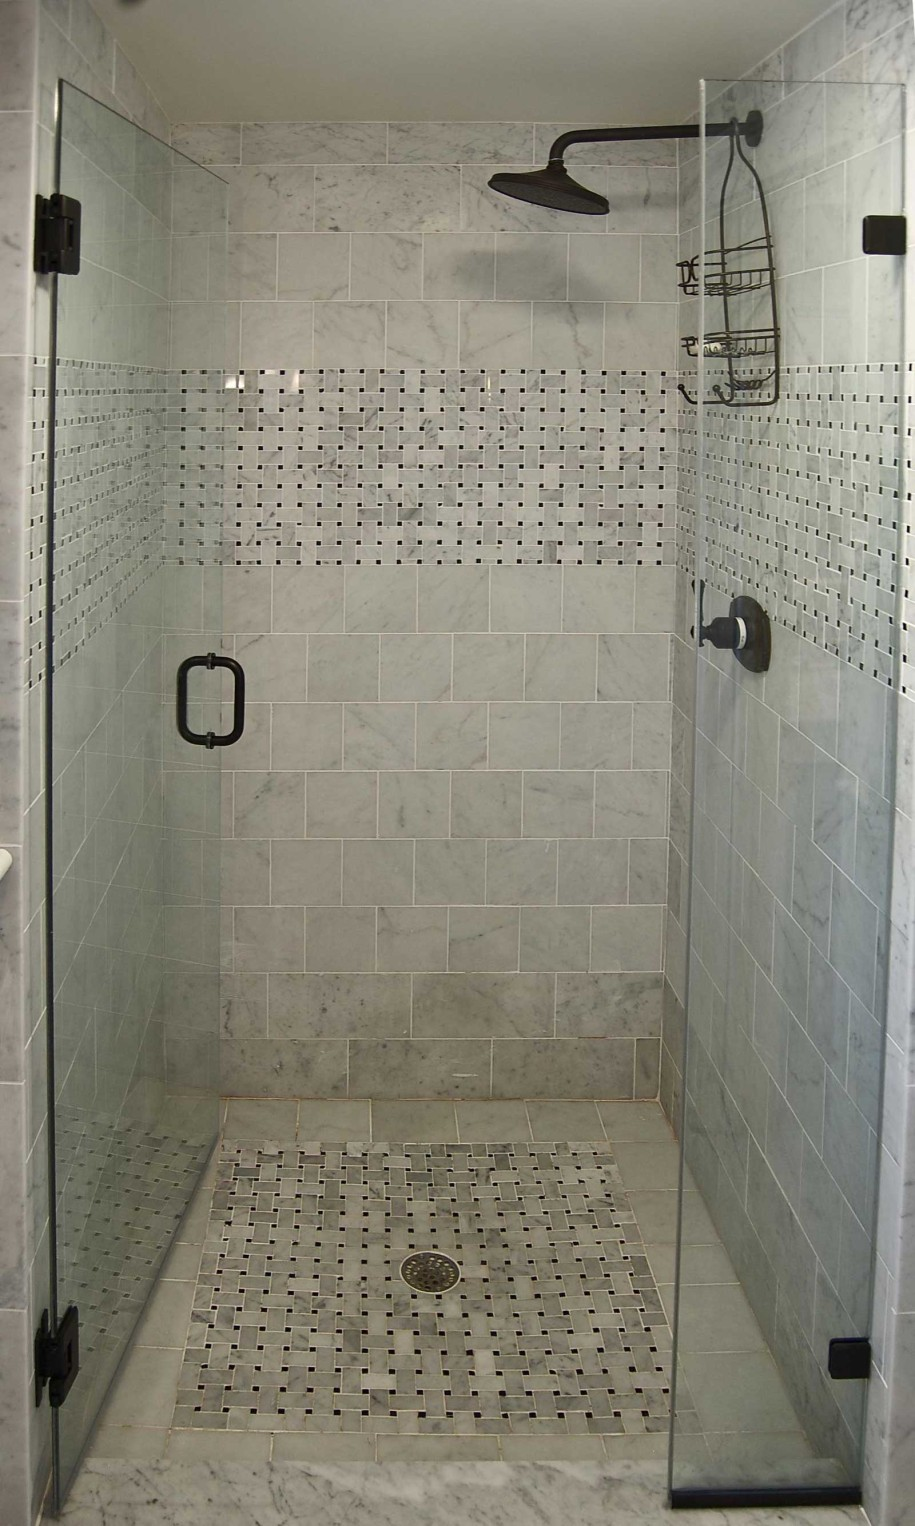 Shower design ideas small bathroom Photo - 1